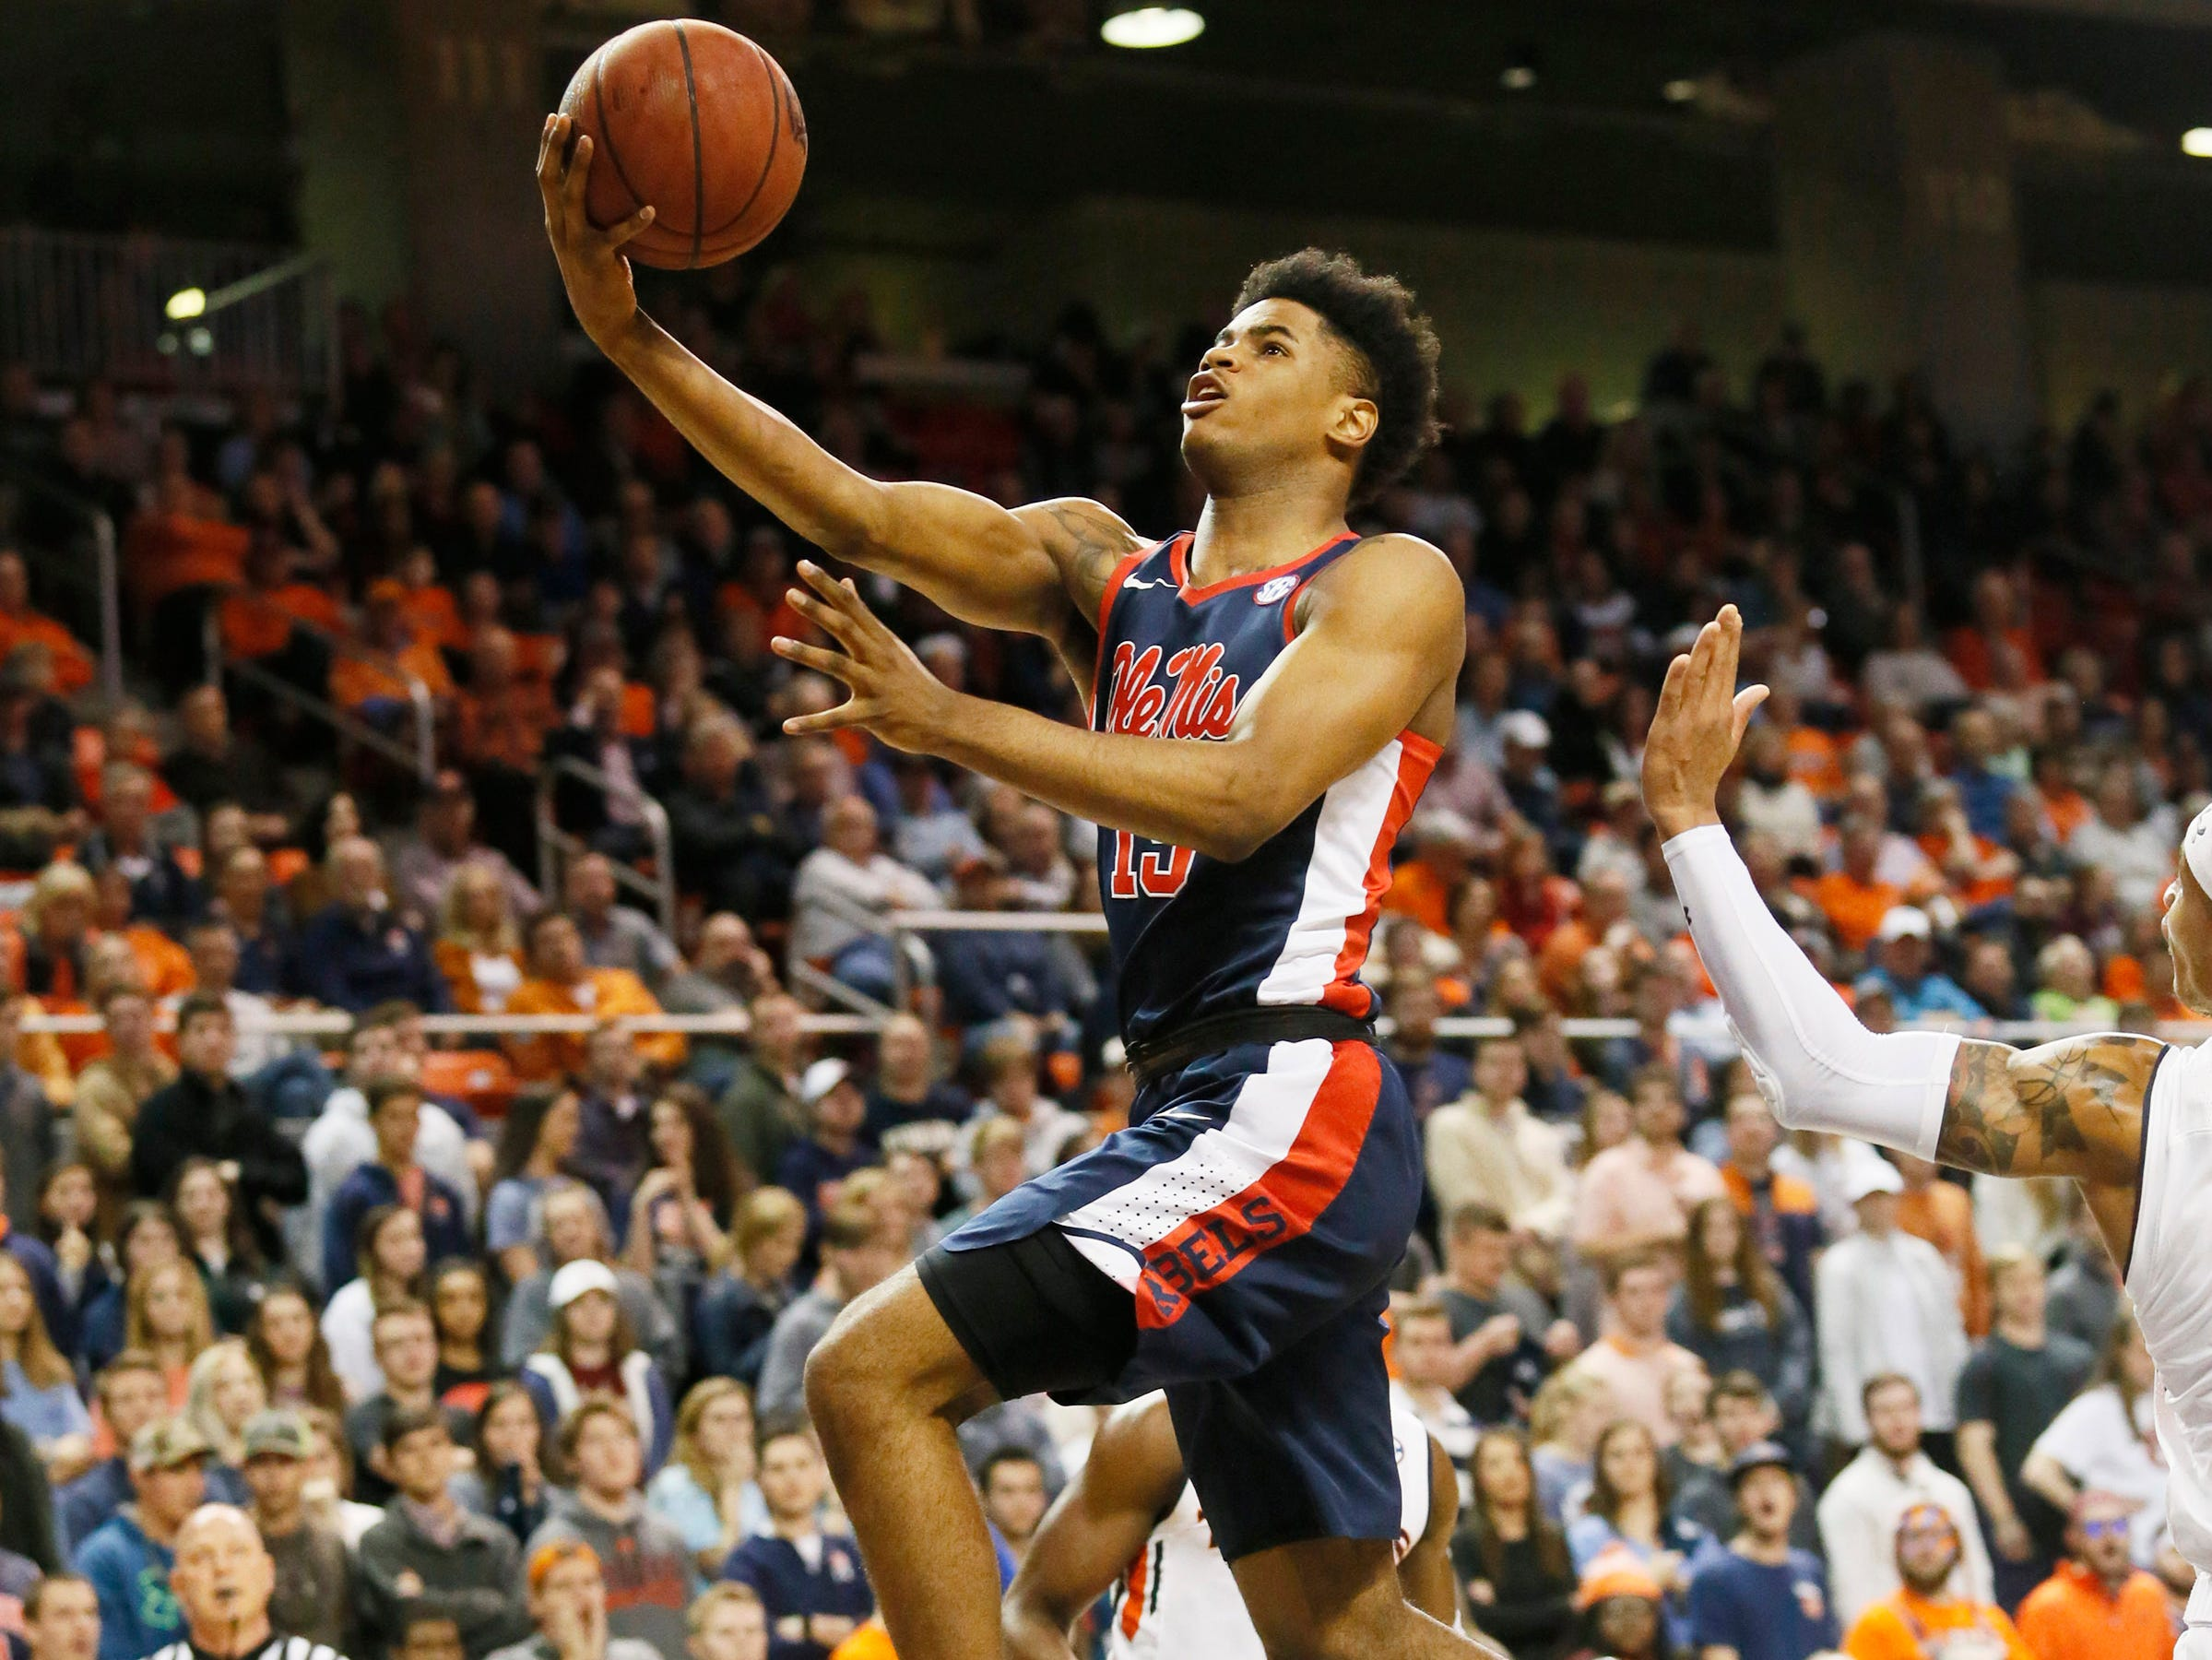 Feb 13, 2019; Auburn, AL, USA; Ole Miss Rebels forward Luis Rodriguez (15) takes a shot against the Auburn Tigers during the first half at Auburn Arena. Mandatory Credit: John Reed-USA TODAY Sports